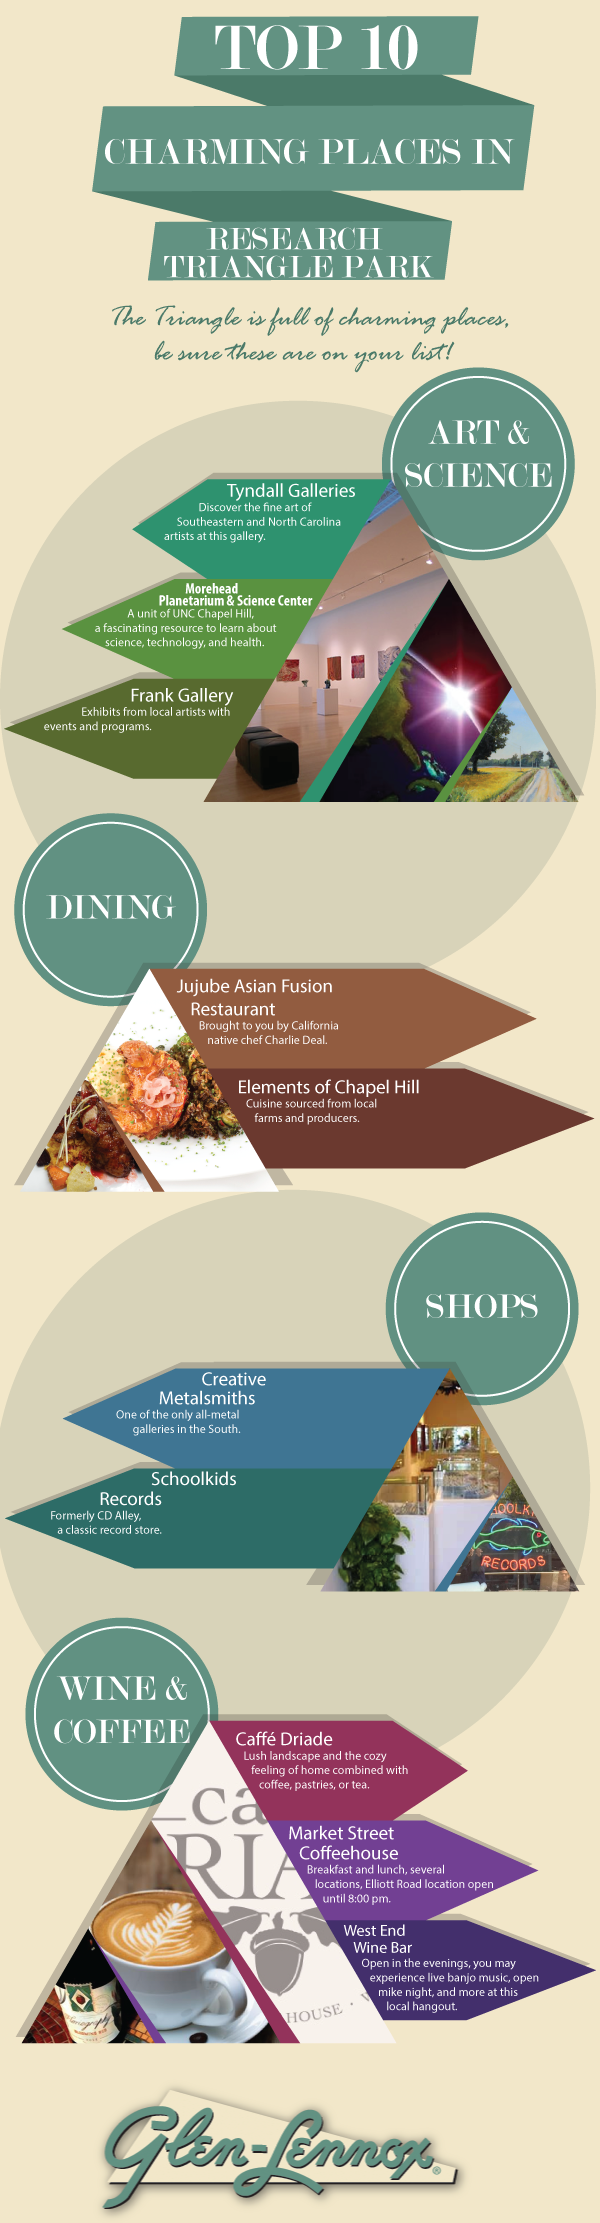 Most Charming Places in Research Triangle Park Infographic